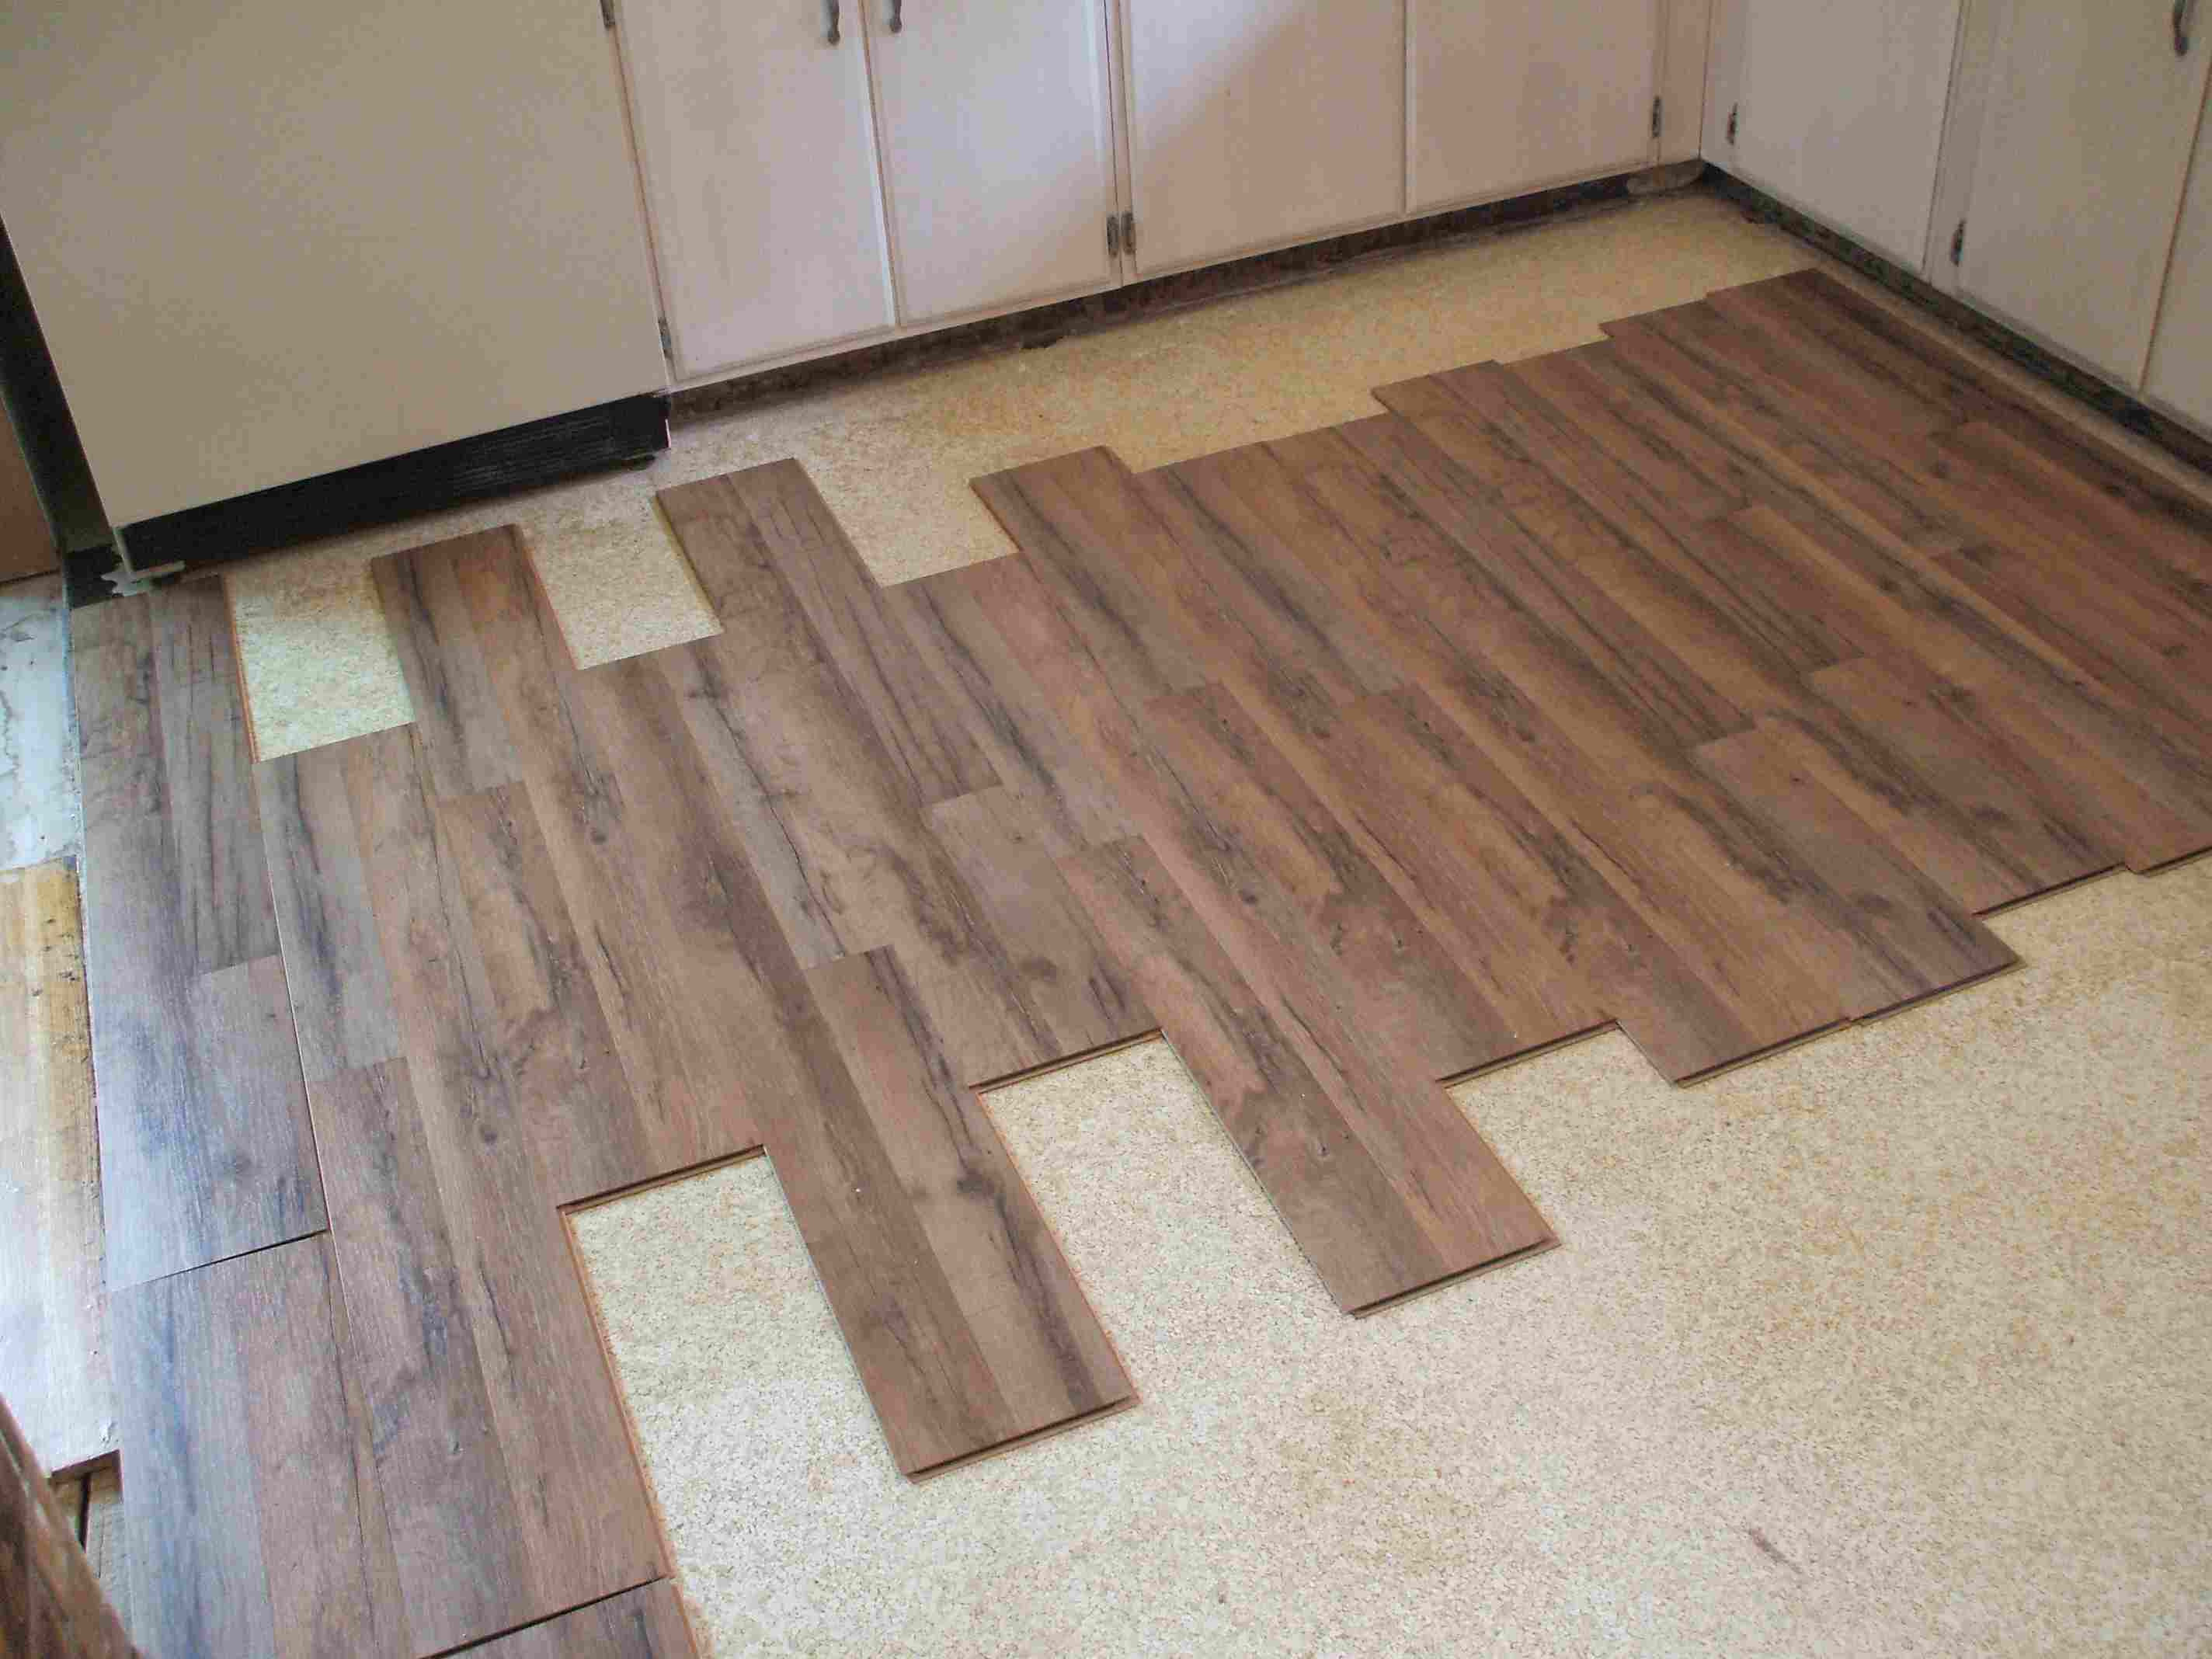 fake hardwood floor options of laminate flooring installation made easy inside installing laminate eyeballing layout 56a49d075f9b58b7d0d7d693 jpg